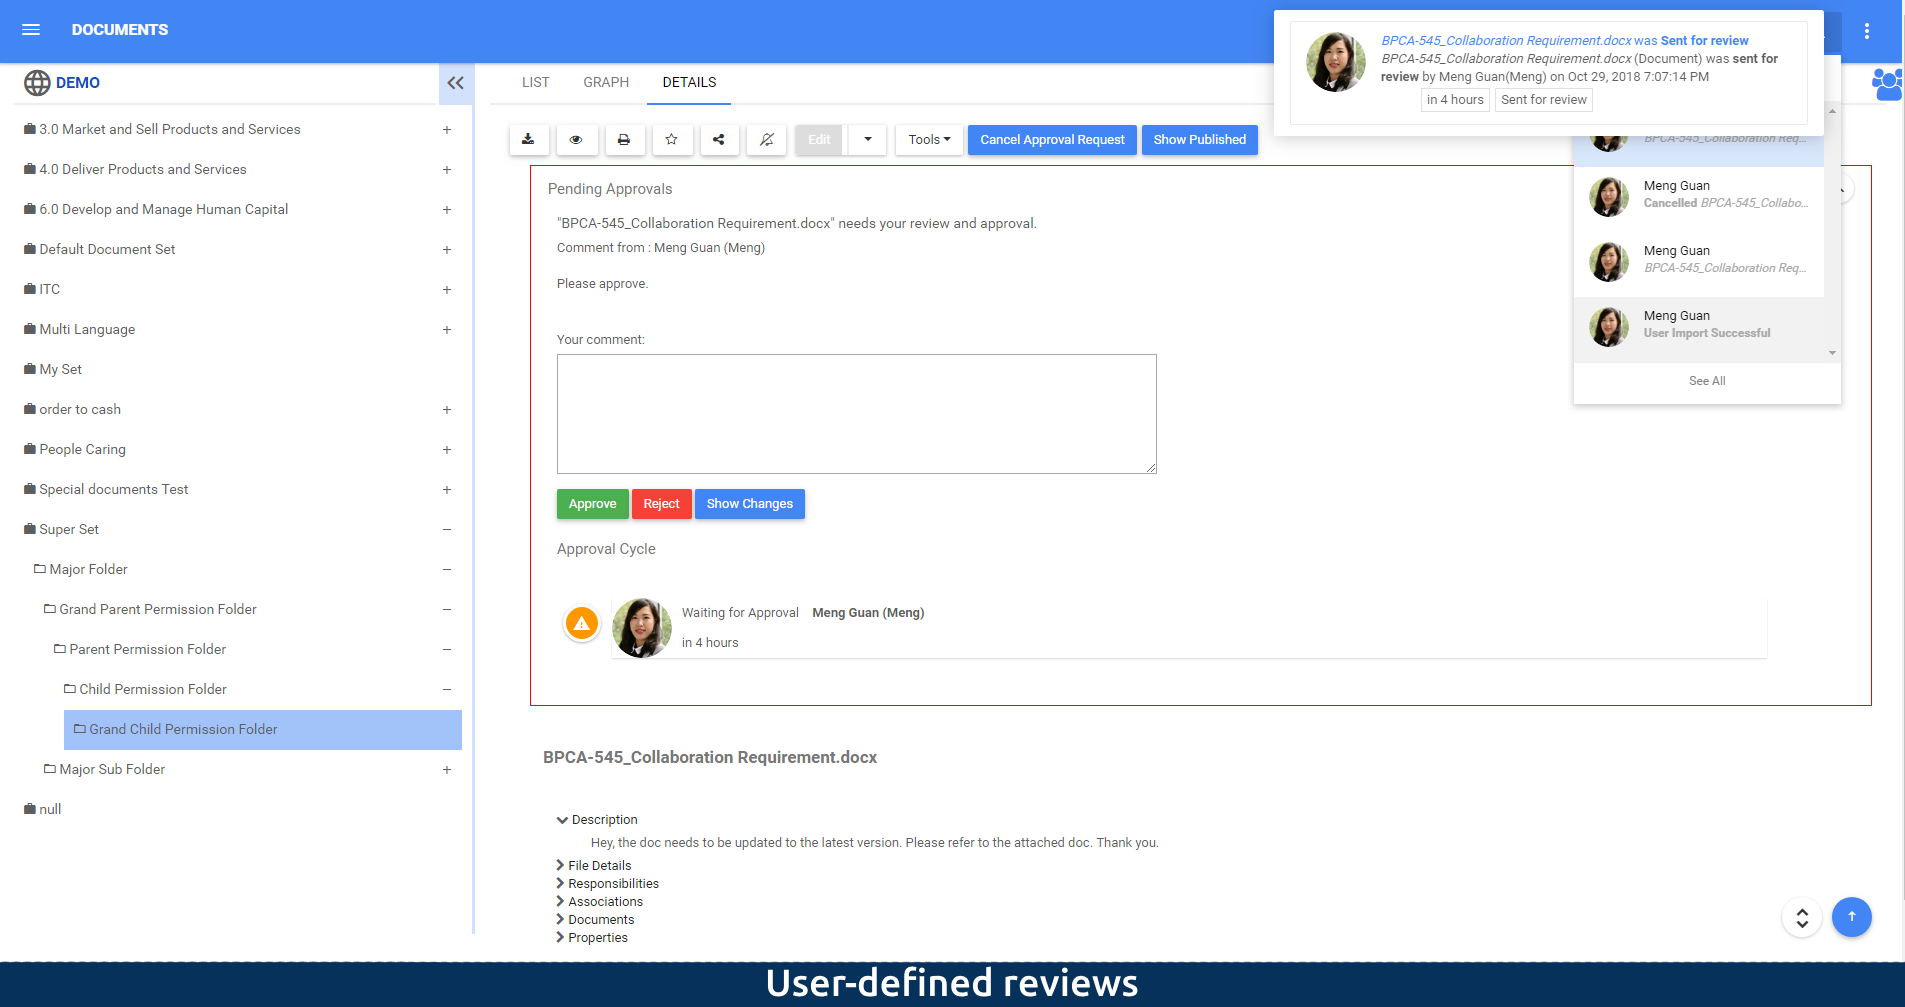 User-defined reviews